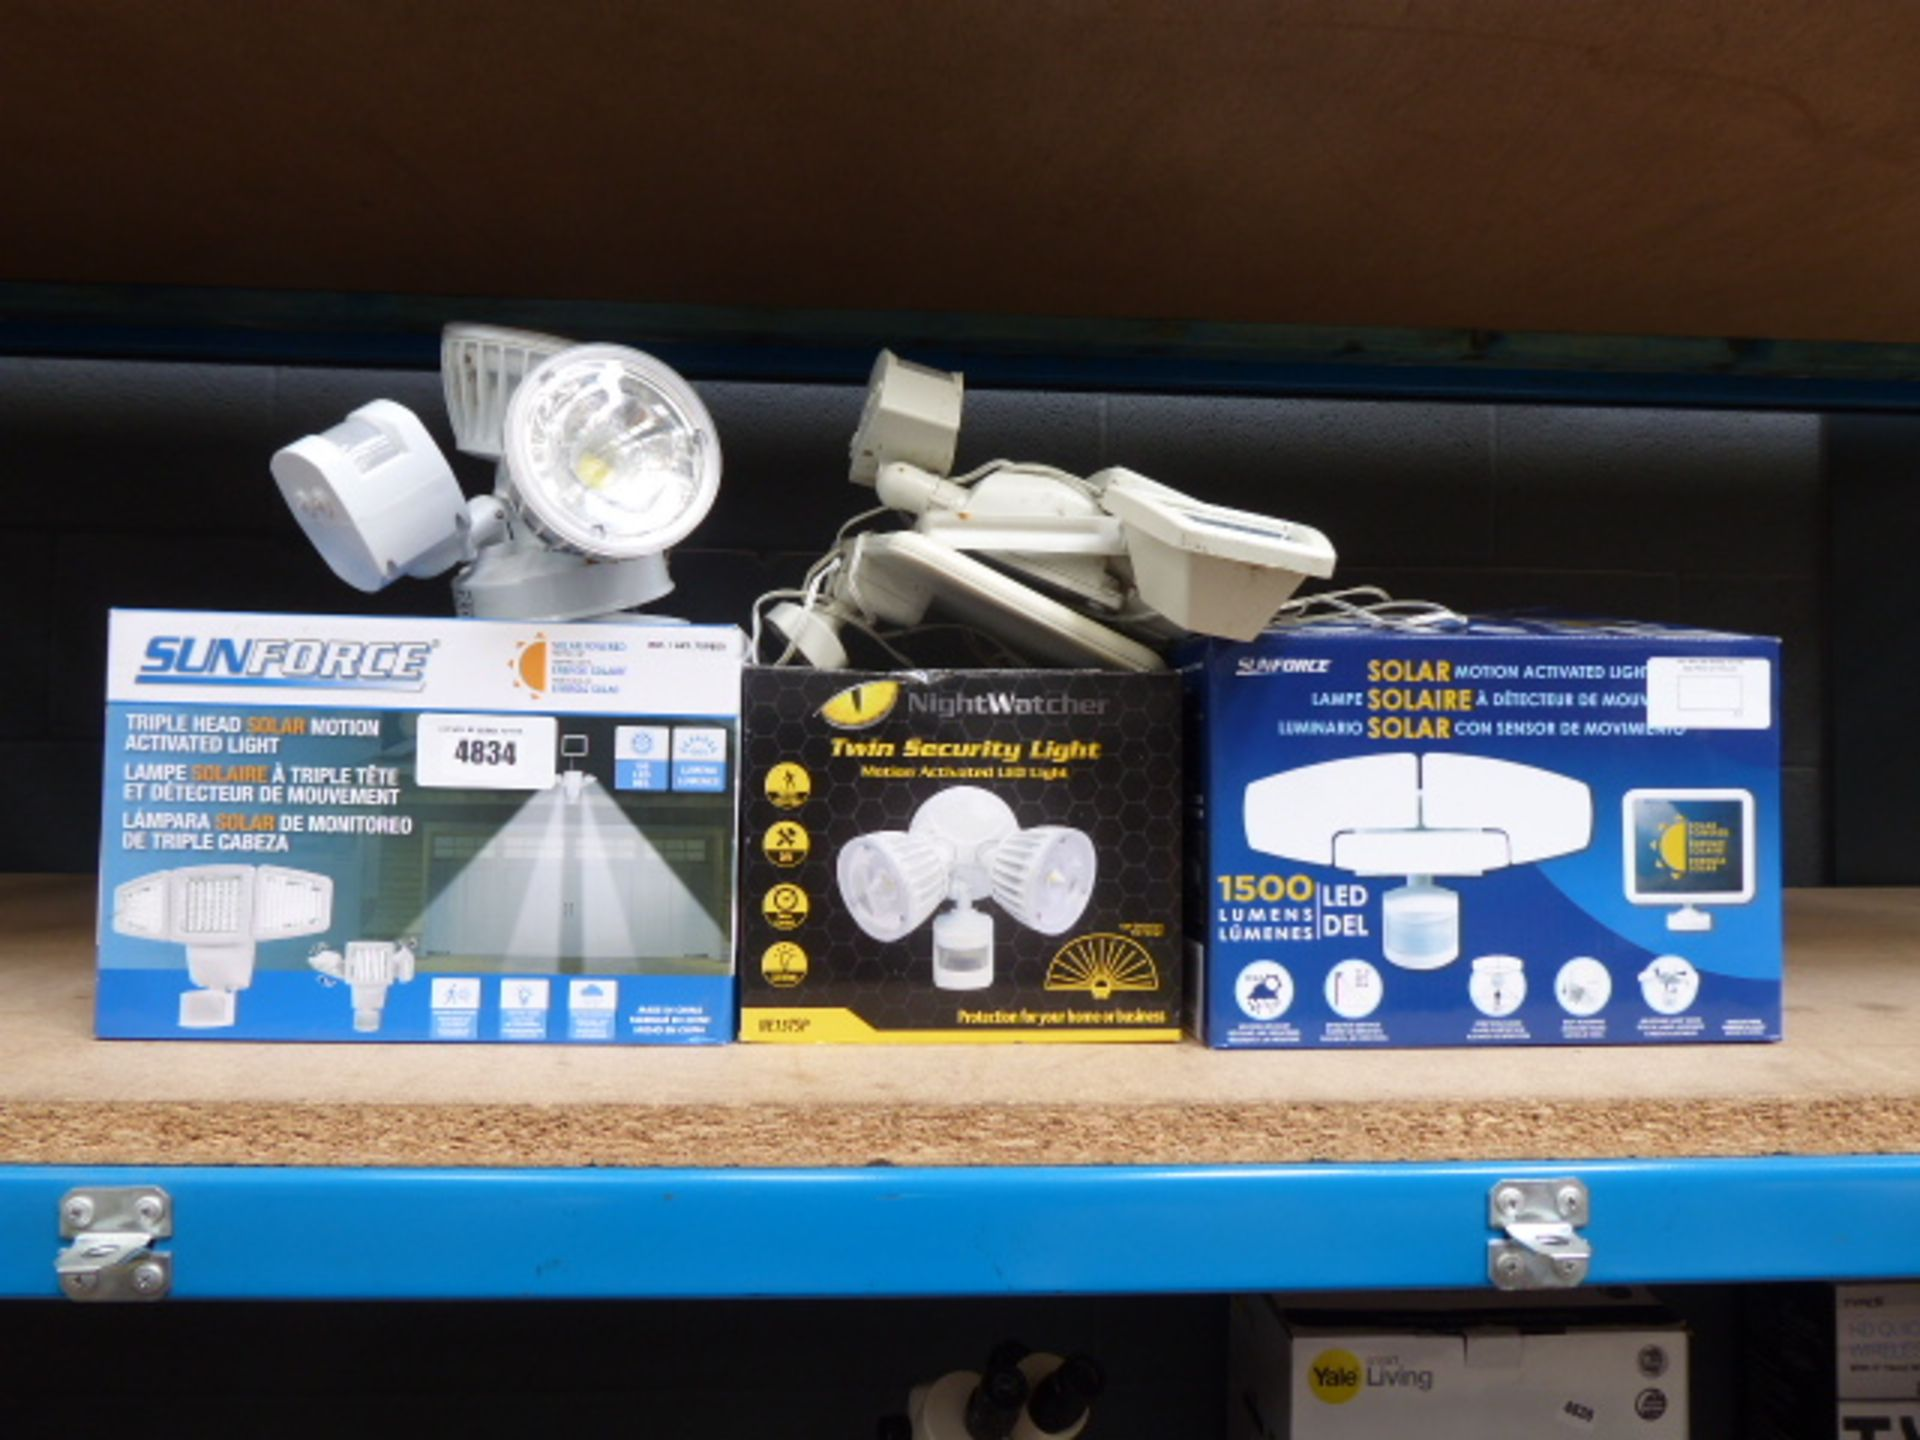 Lot 4834 - 3 Boxed and 2 unboxed solar motion lights